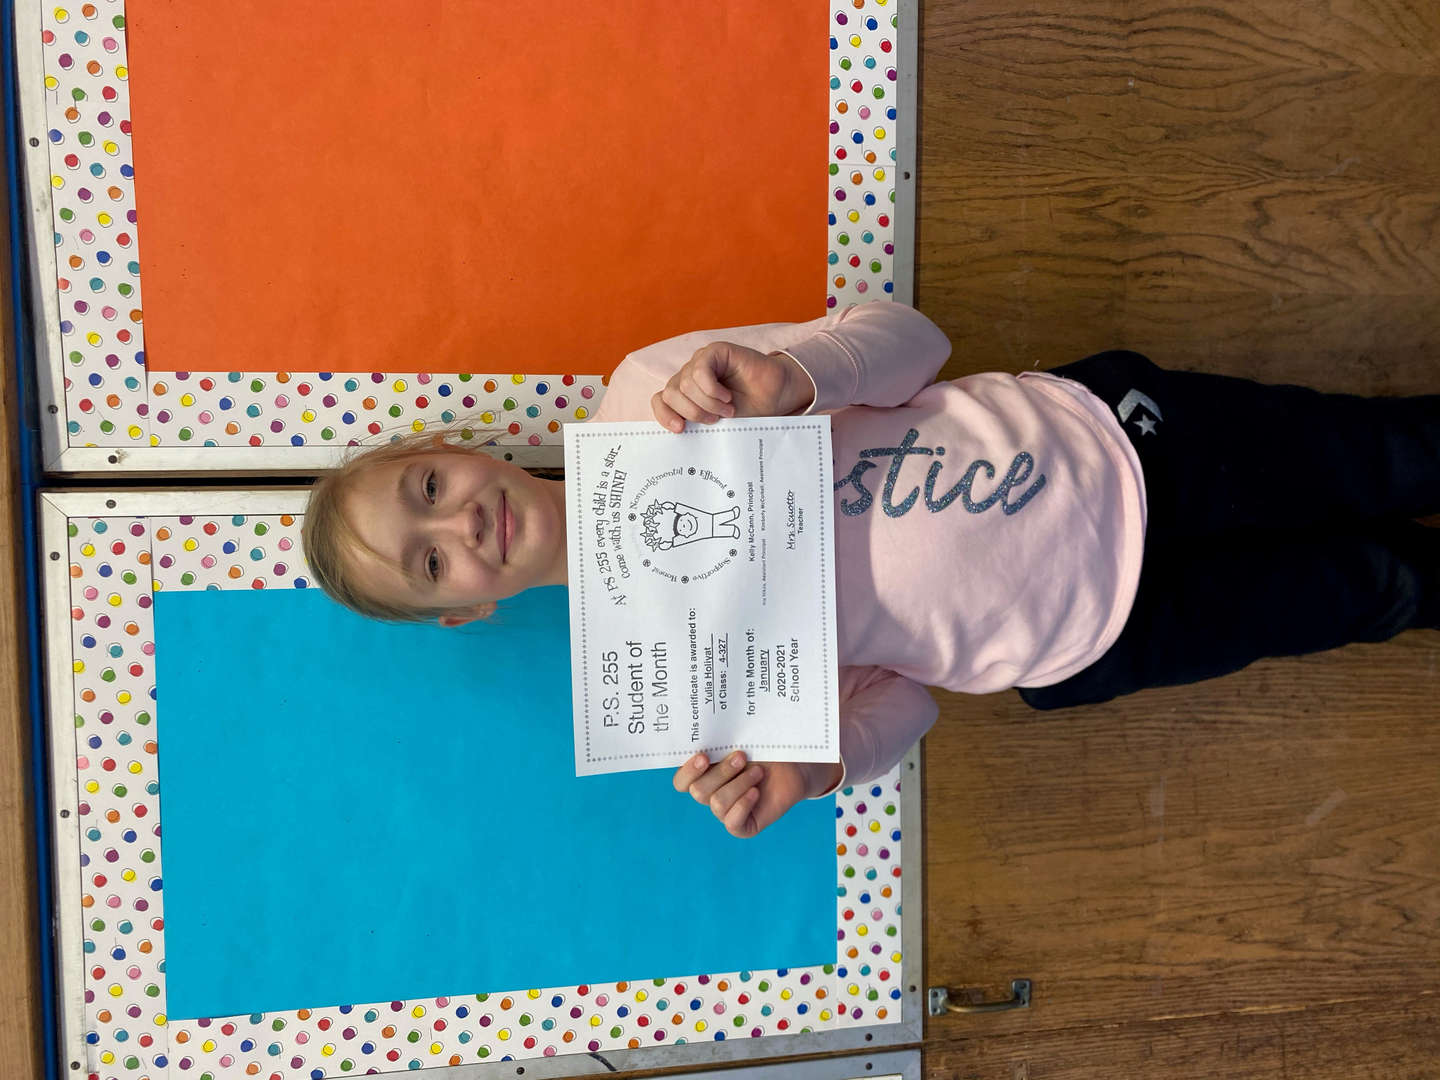 Yulia January Student of the Month